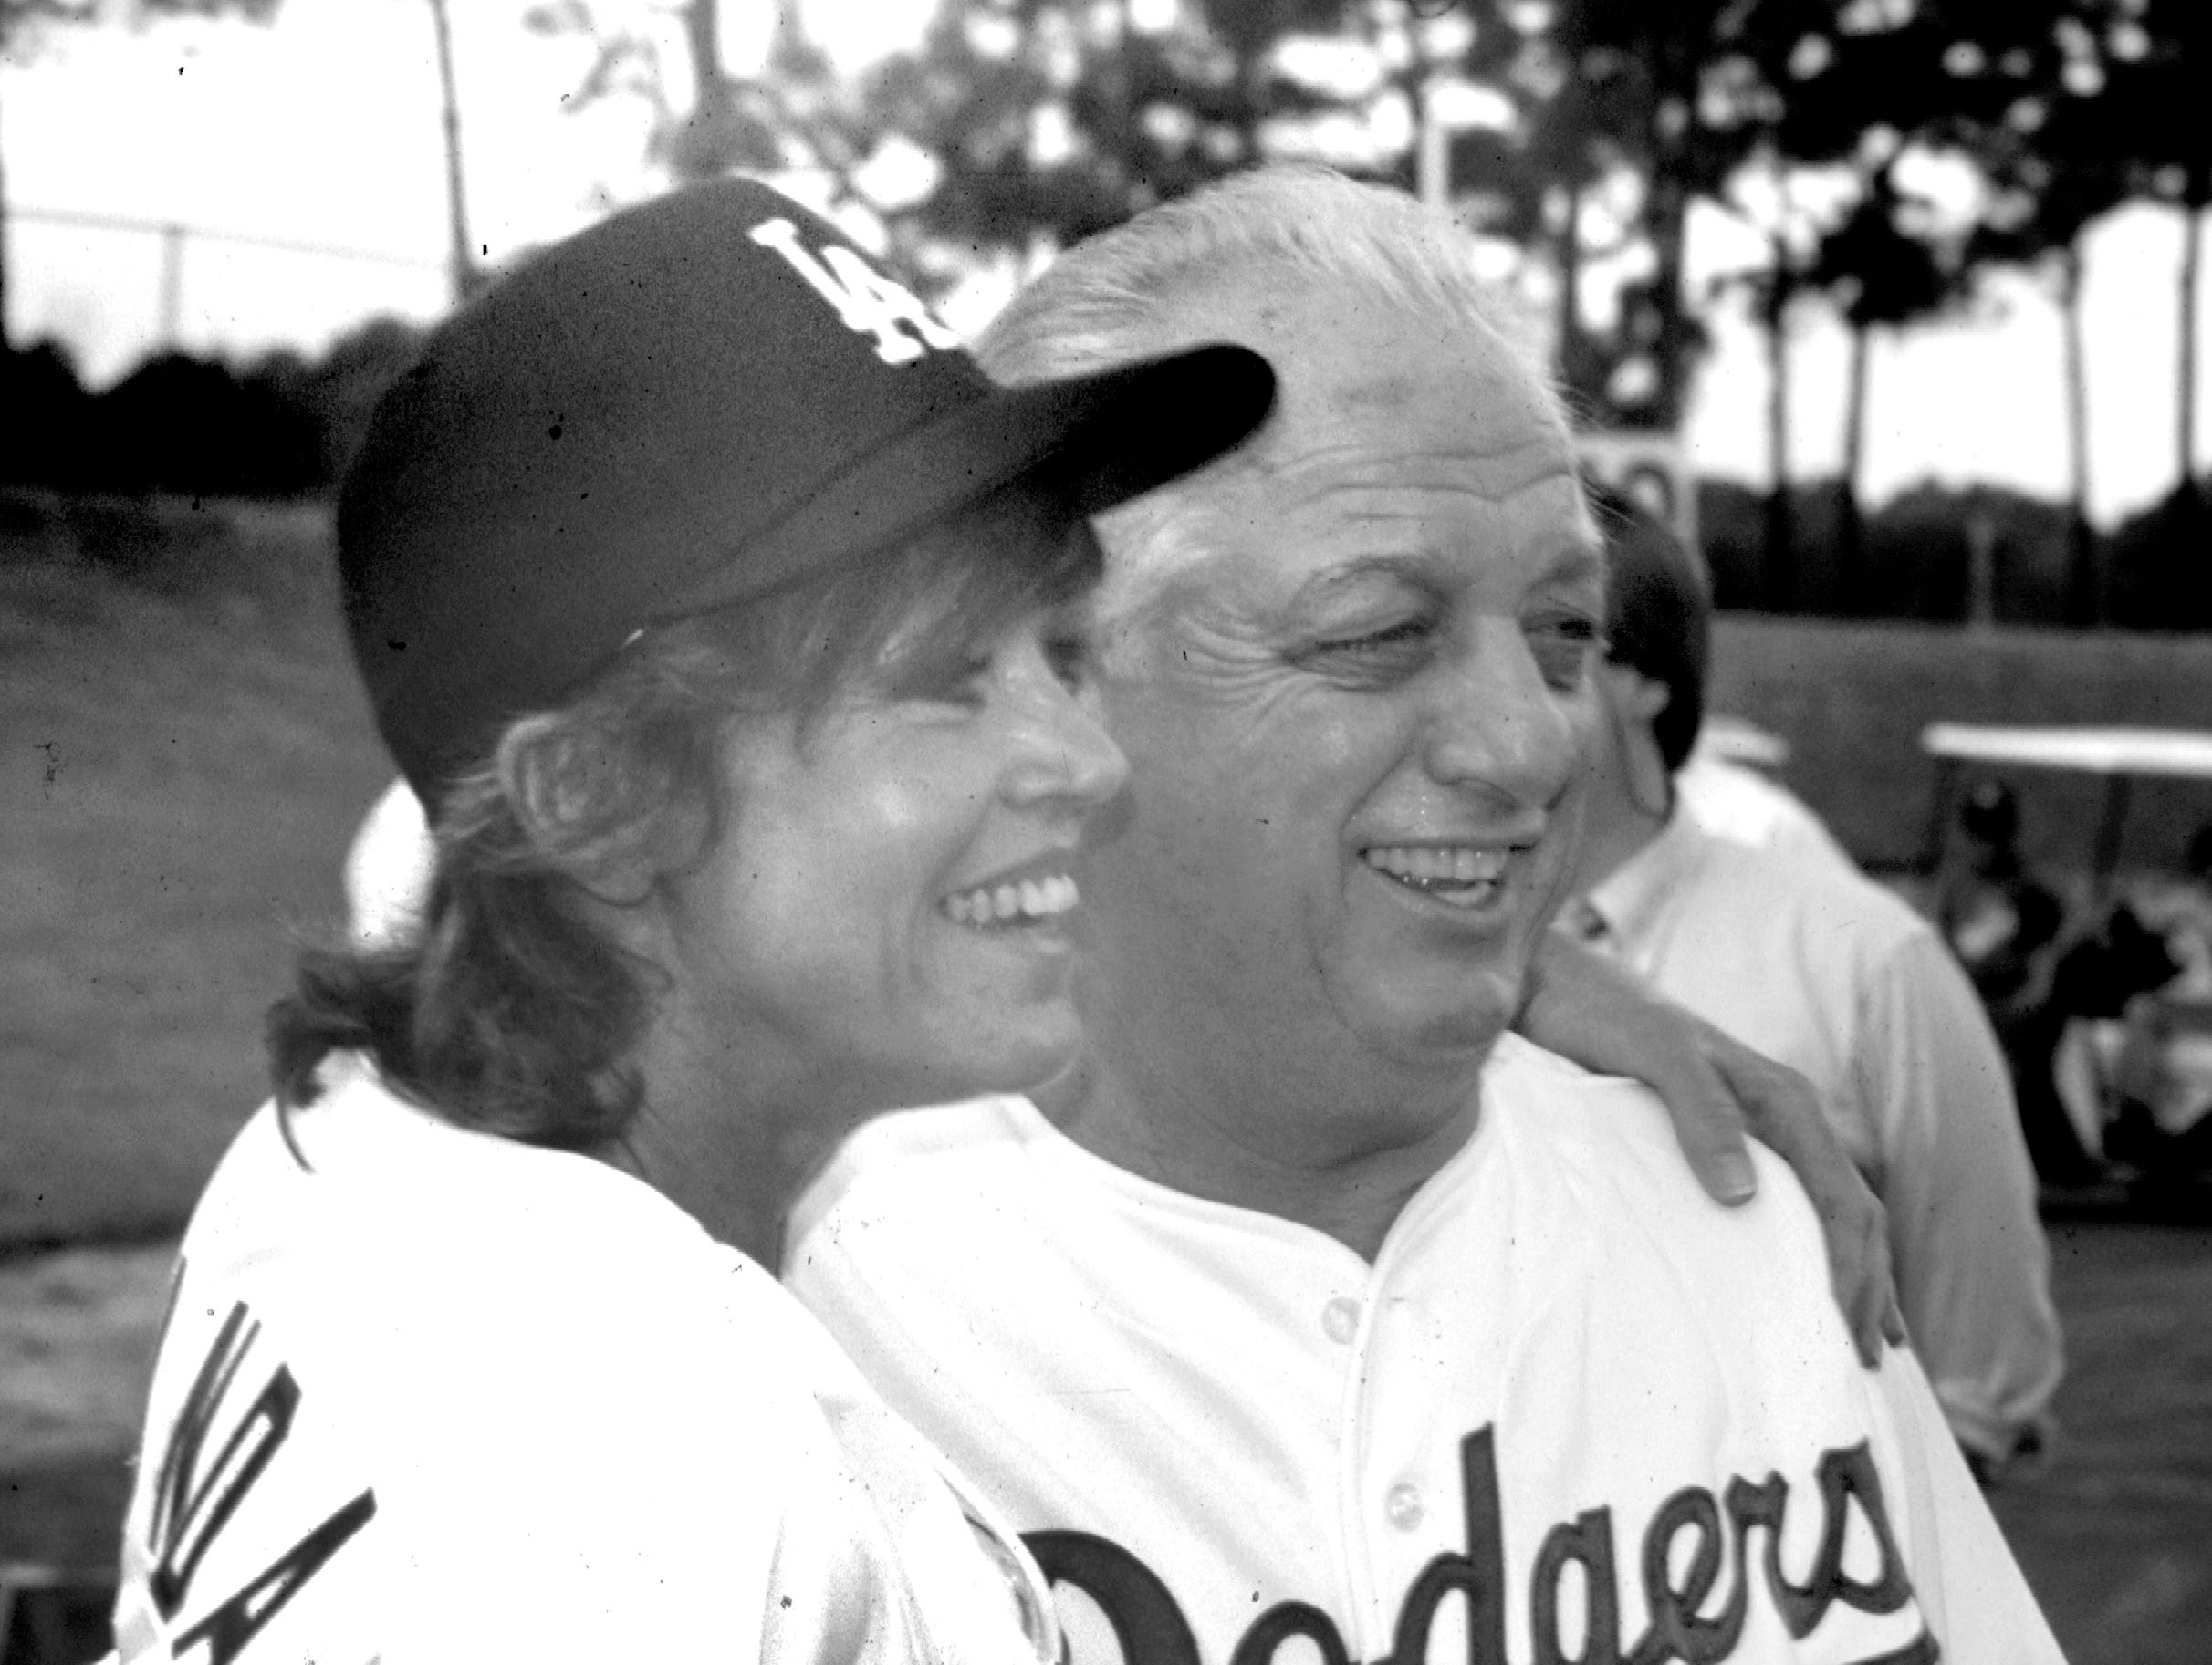 Jane Fonda poses for a picture with Los Angeles Dodgers manager Tommy Lasorda in November 1986 during an Adult Baseball Fantasy Camp held at Dodgertown in Vero Beach. She traveled with her her husband Tom Hayden who was participating in the camp.